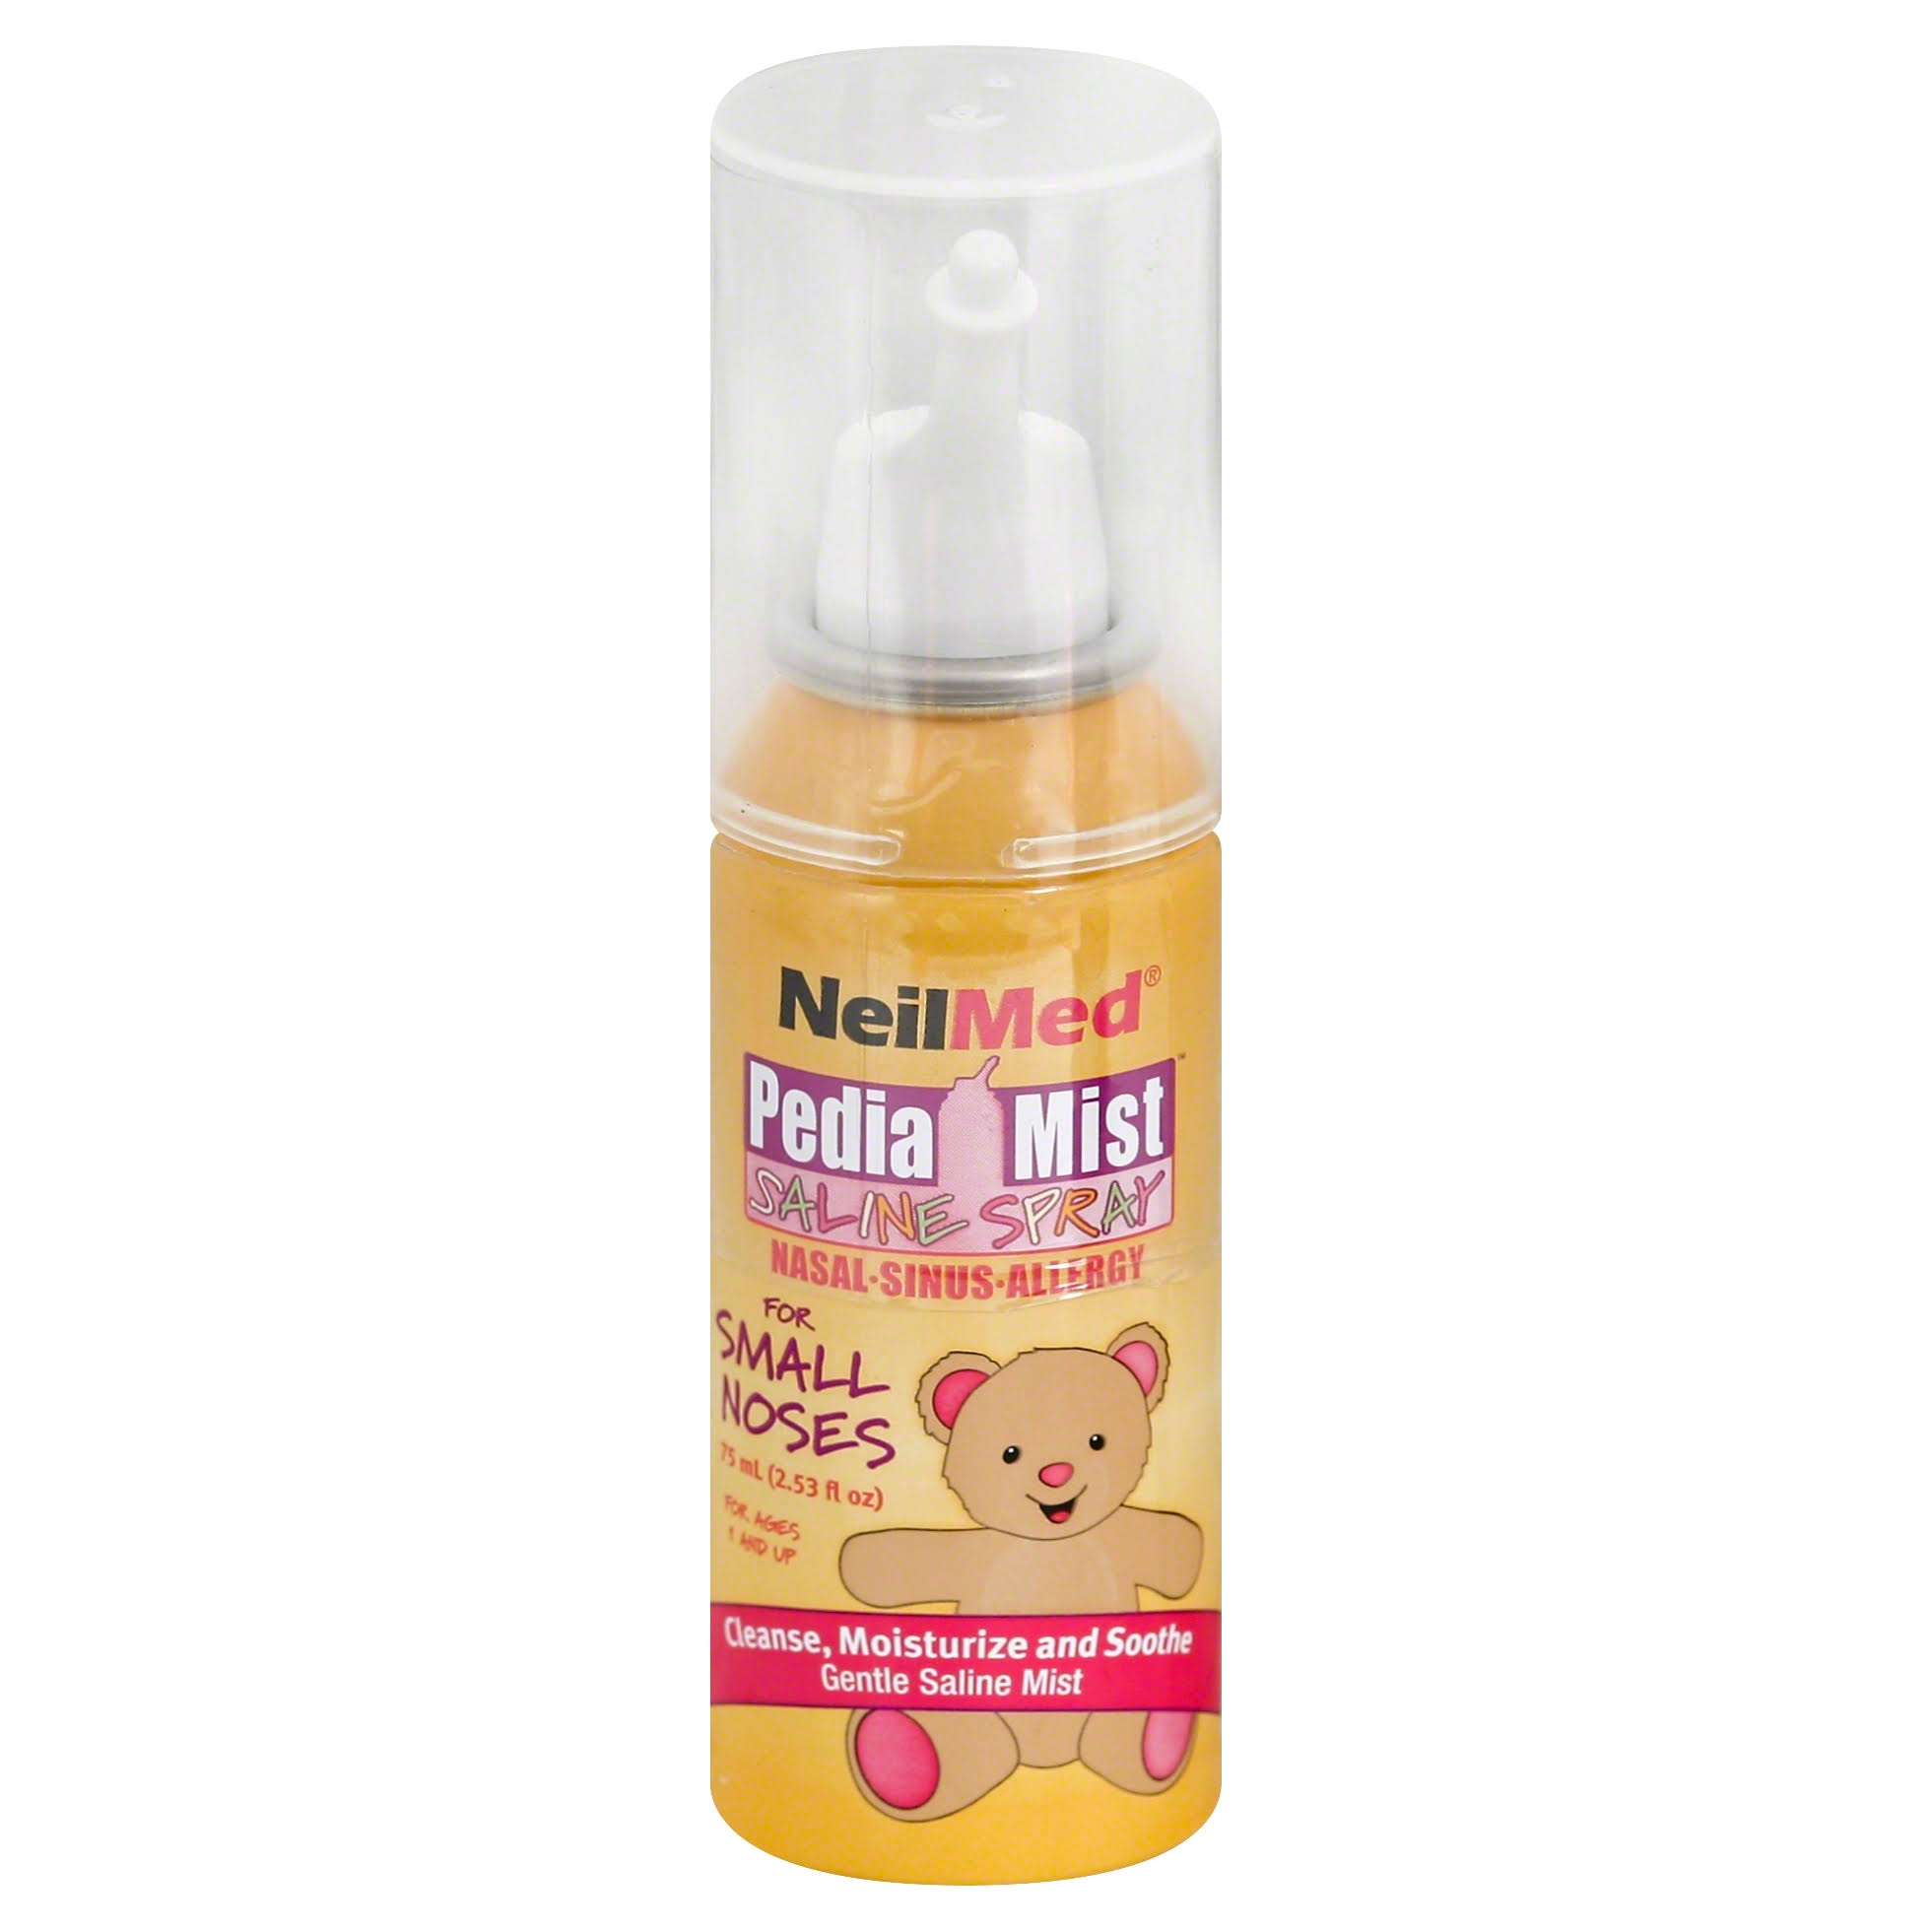 NeilMed Pediamist Pediatric Saline Spray - 2.53oz, 75mL, Kids